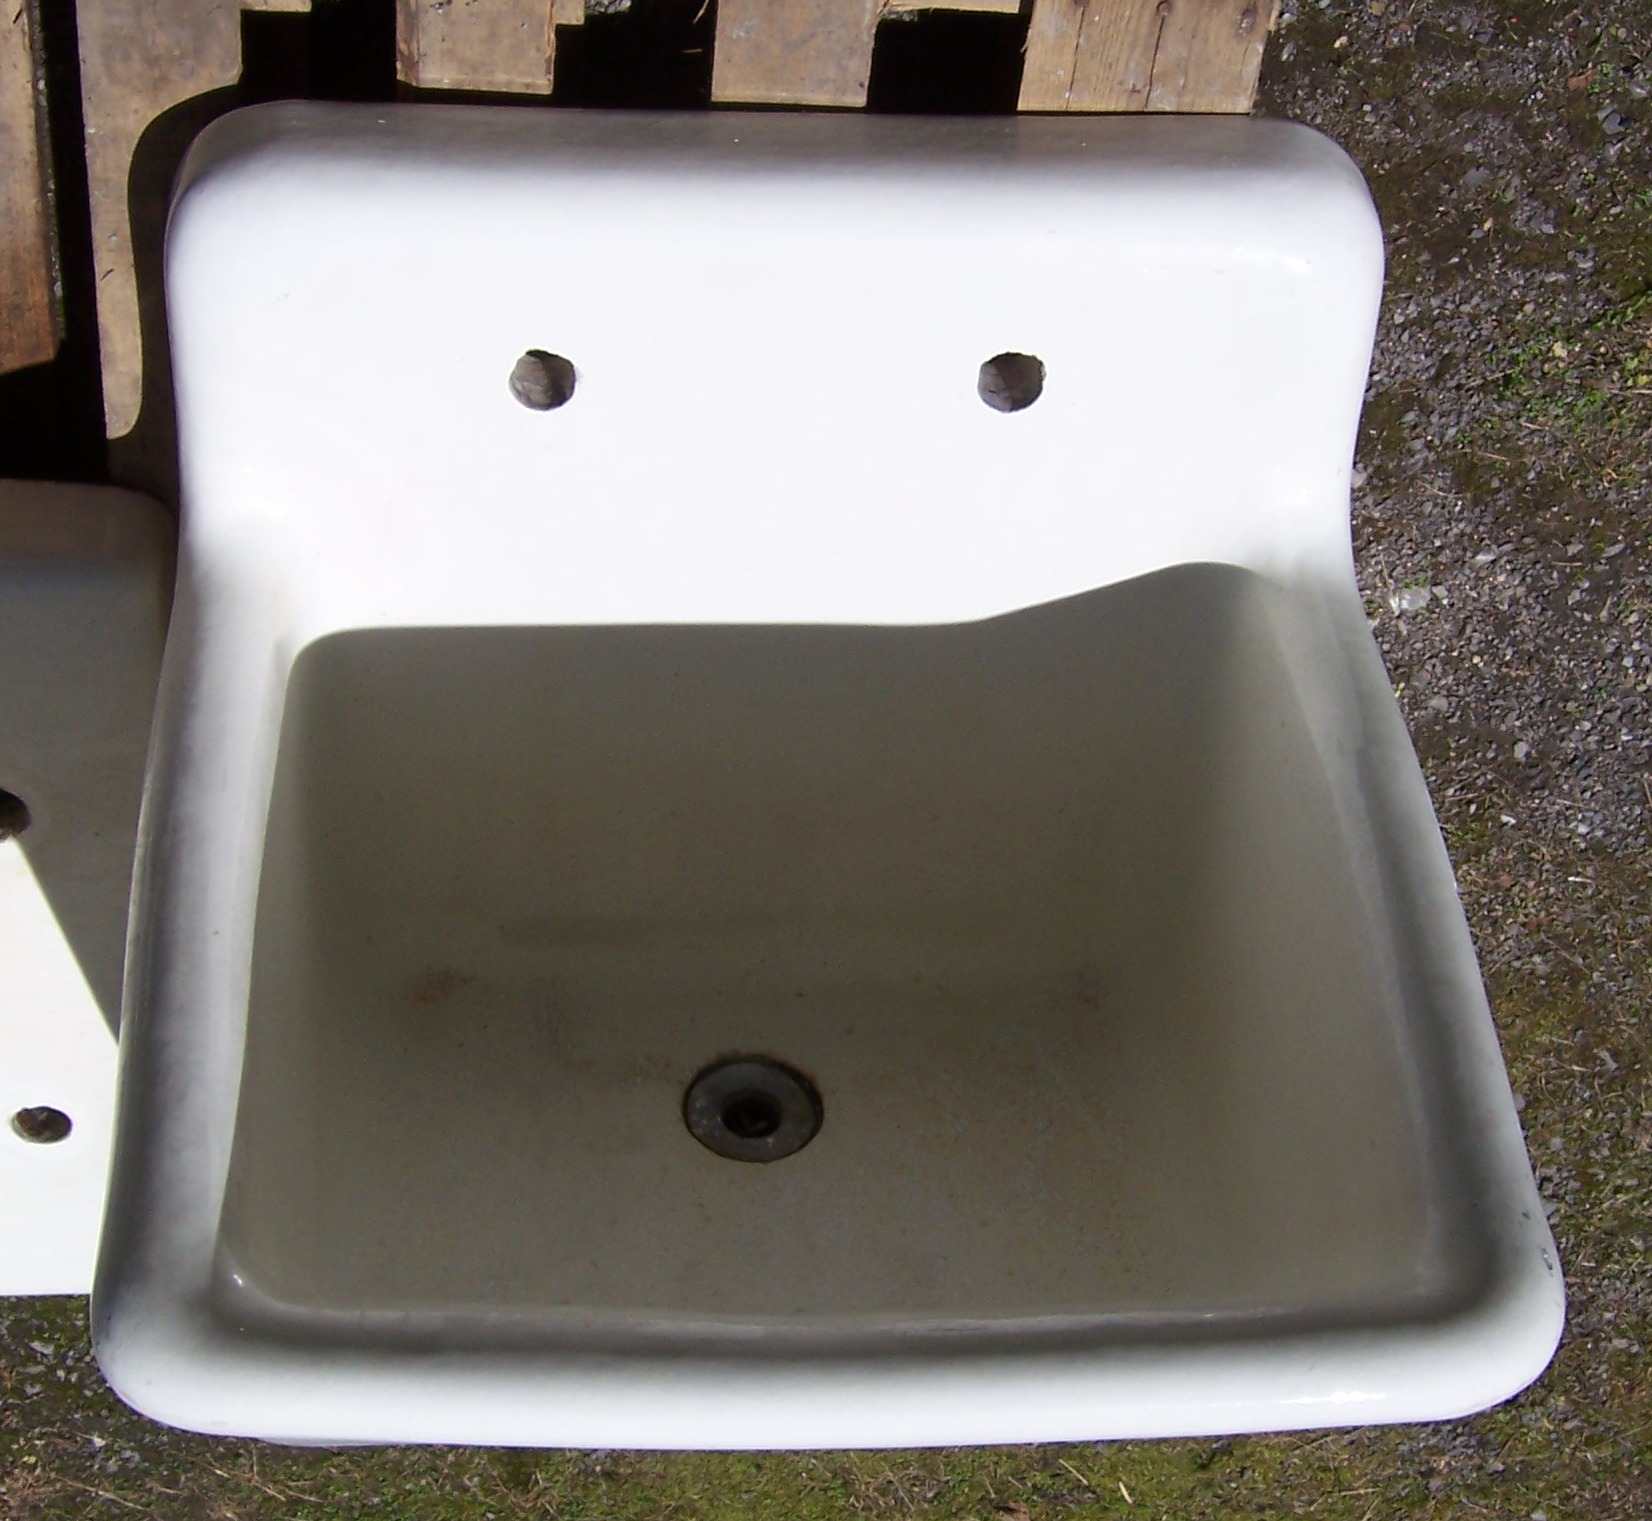 Earthenware Utility Sink -26-1/2? x 26-1/2??$1050